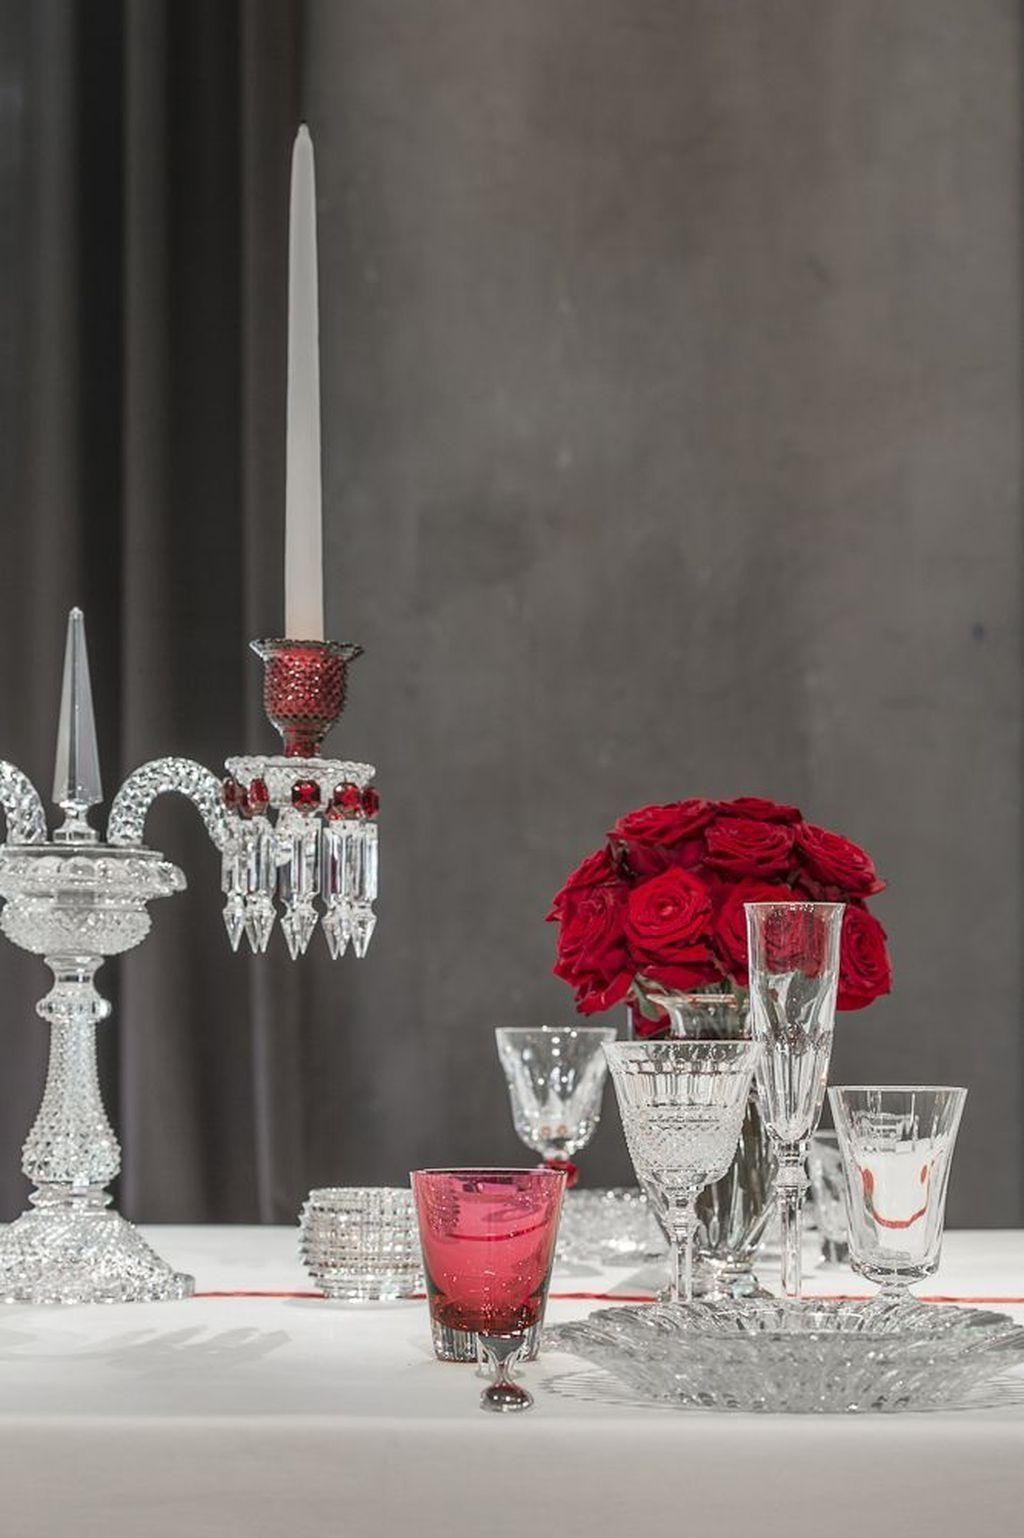 Stunning Romantic Dining Room Decor Ideas Best For Valentines Day 30